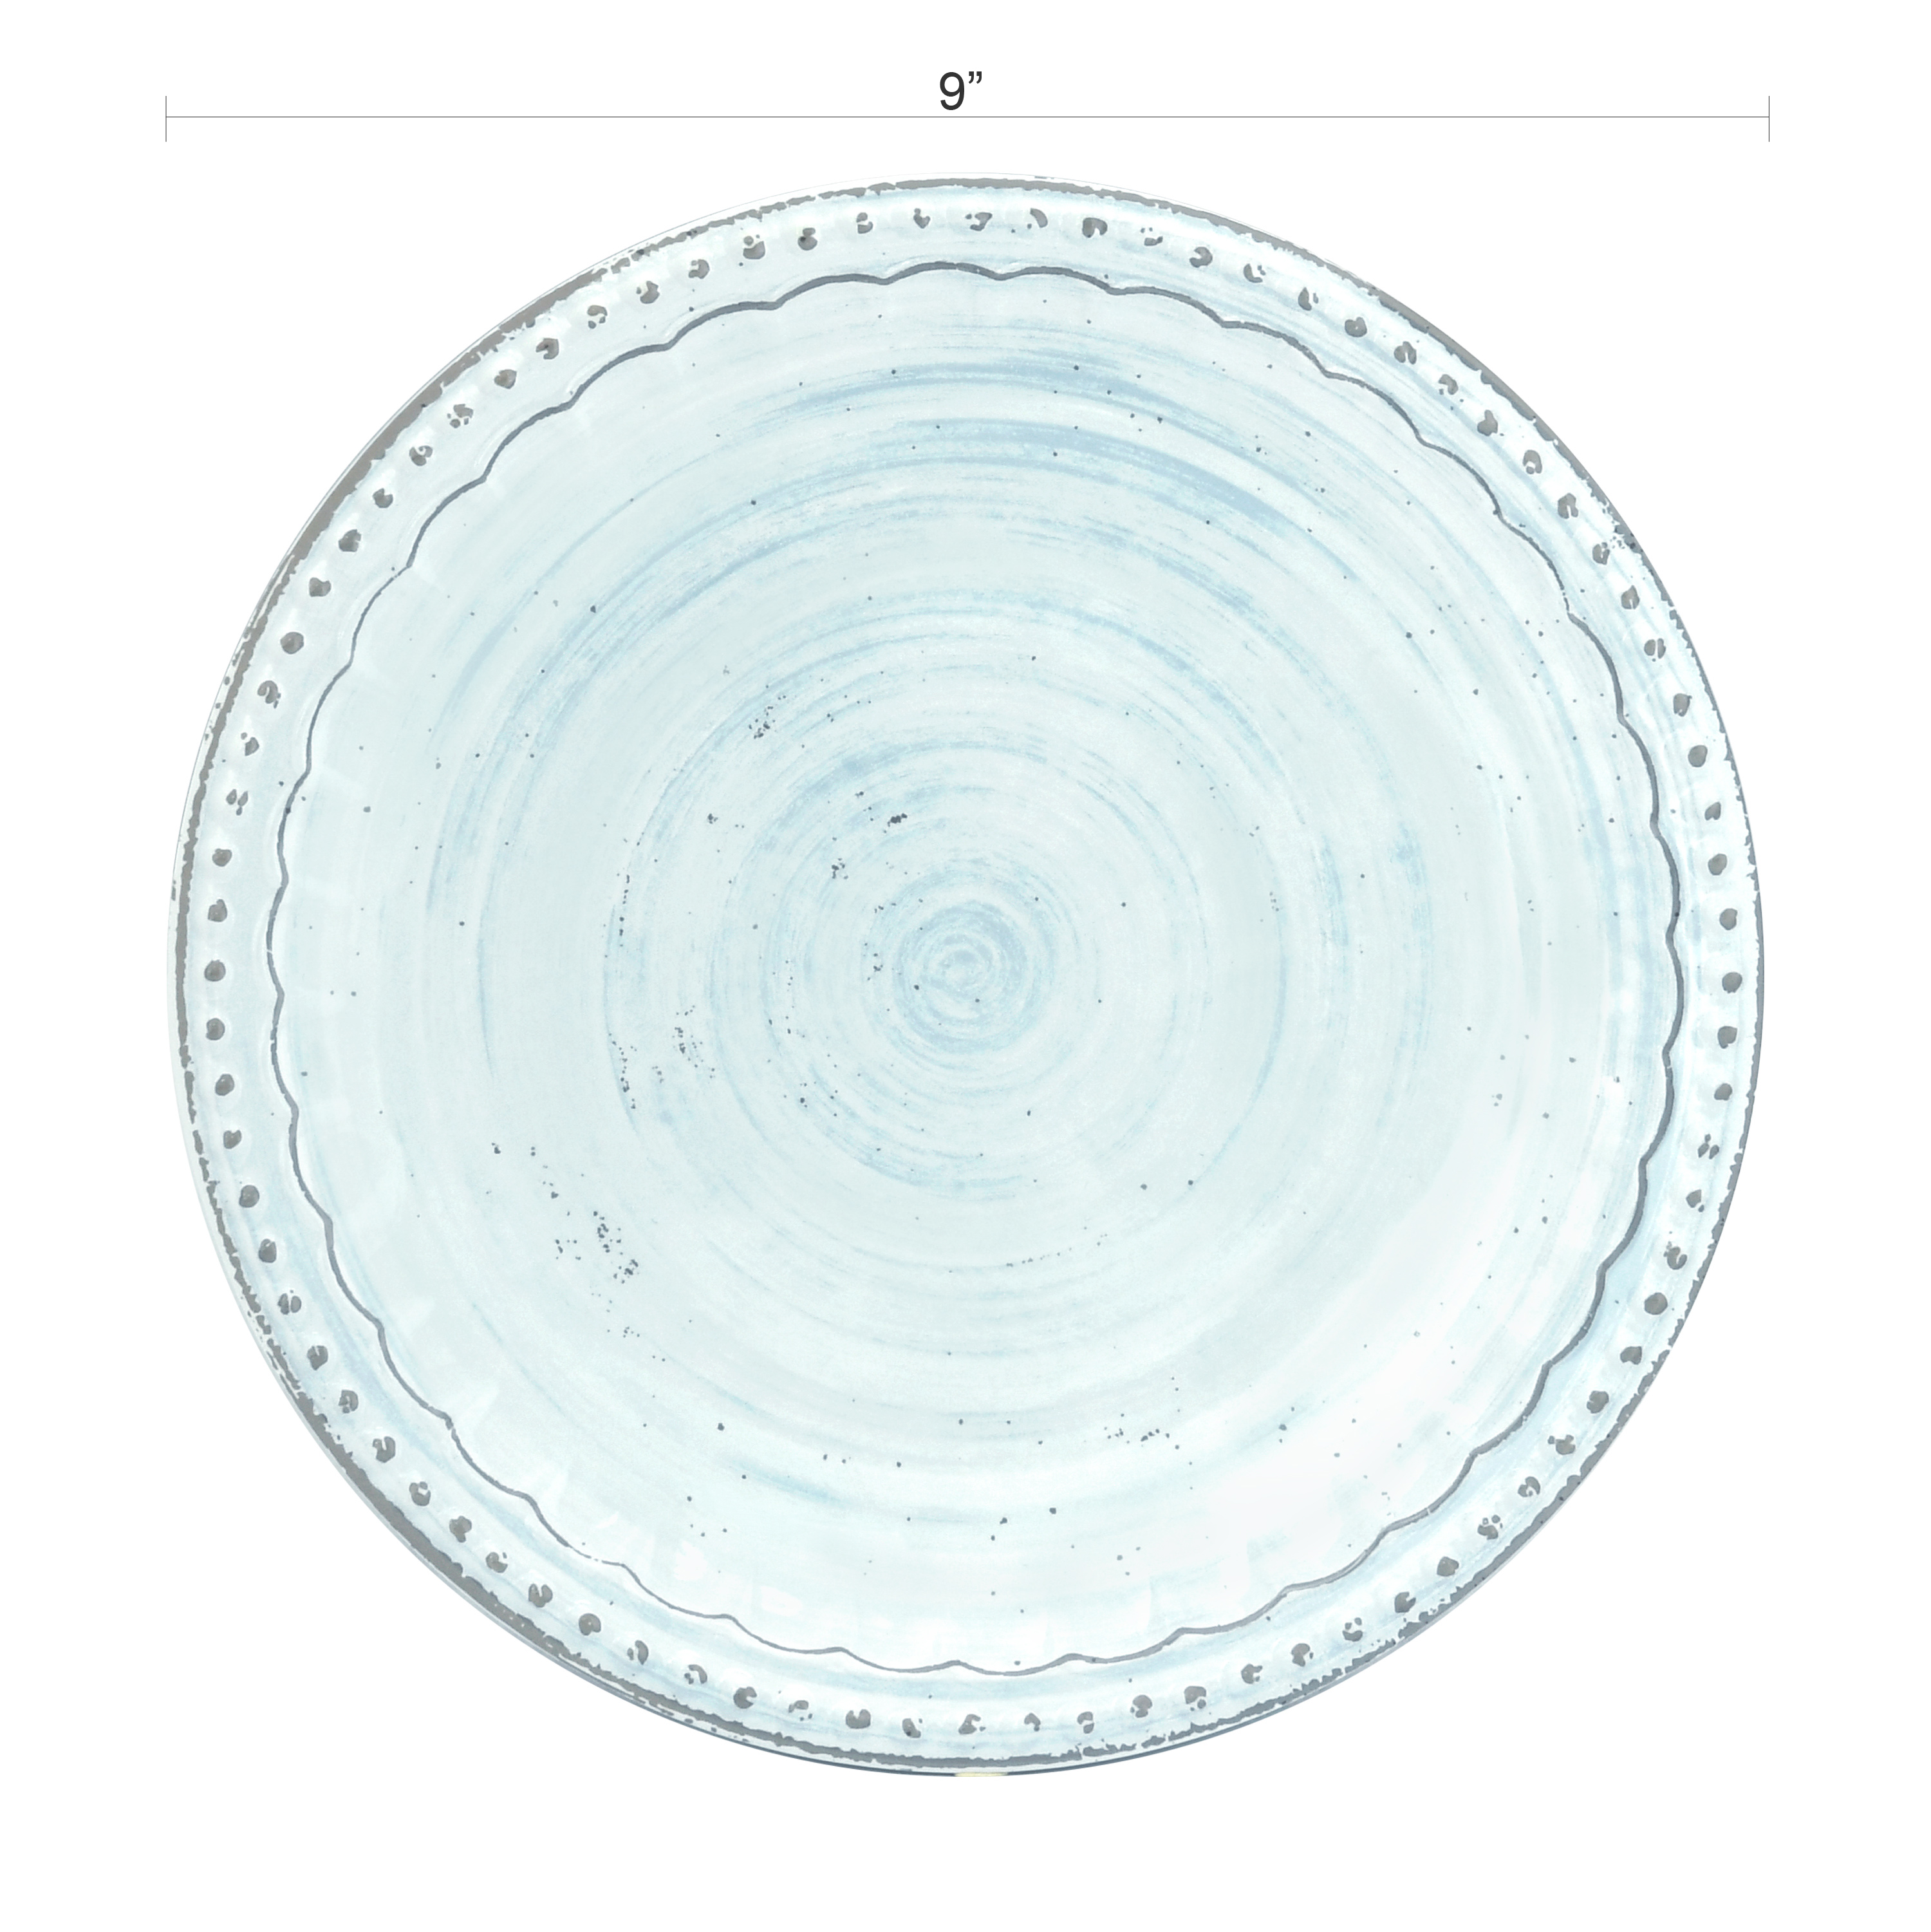 French Country Plate & Bowl Sets, Blue, 12-piece set slideshow image 5